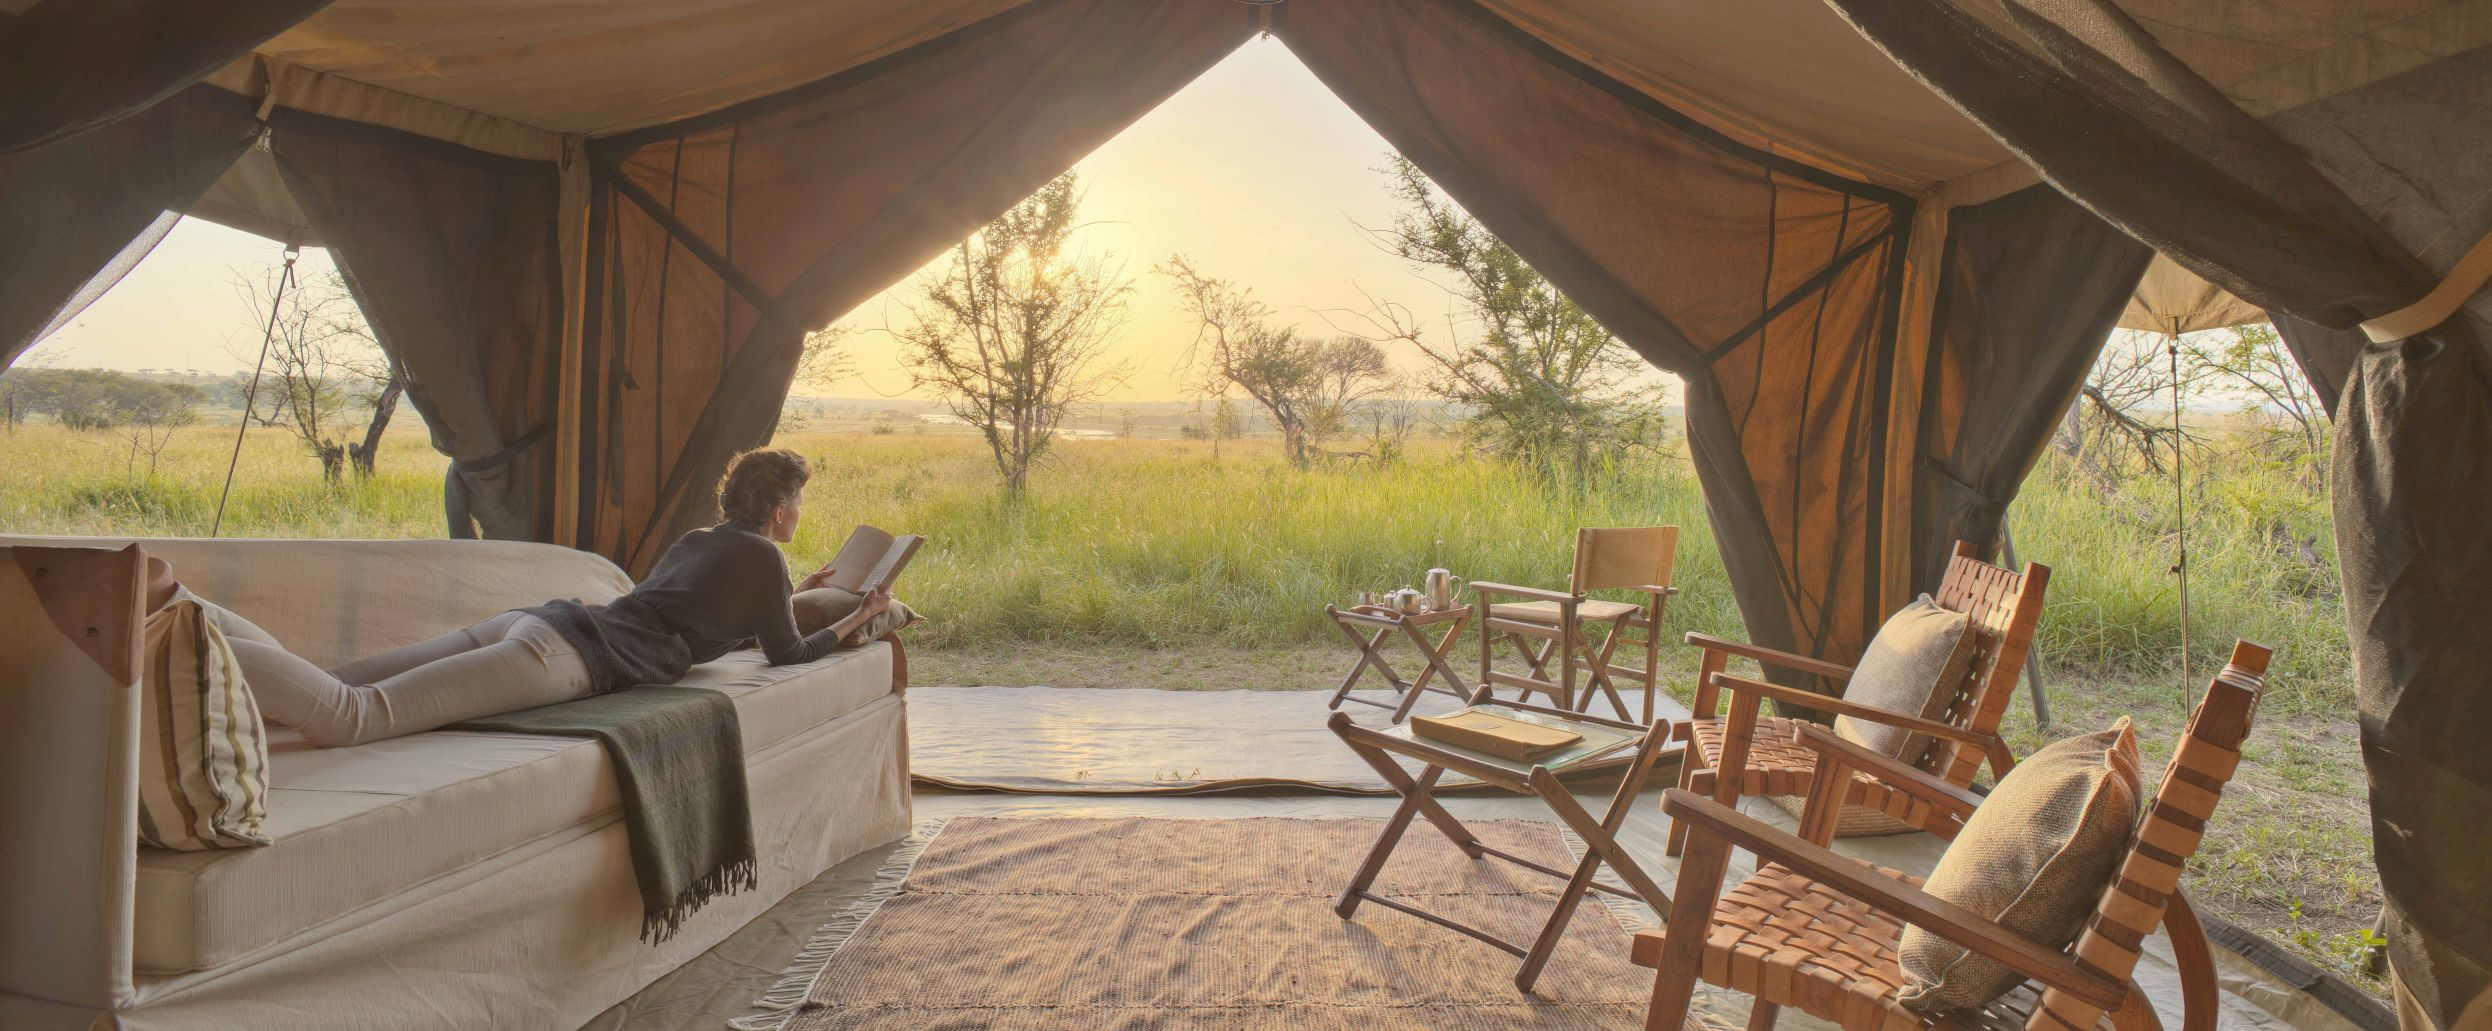 With its stunning diversity, mesmerizing wildlife, and myriad landscapes, Africa offers intrepid travelers some of the most unforgettable experiences on the planet. Here are a few of our favorite spots.